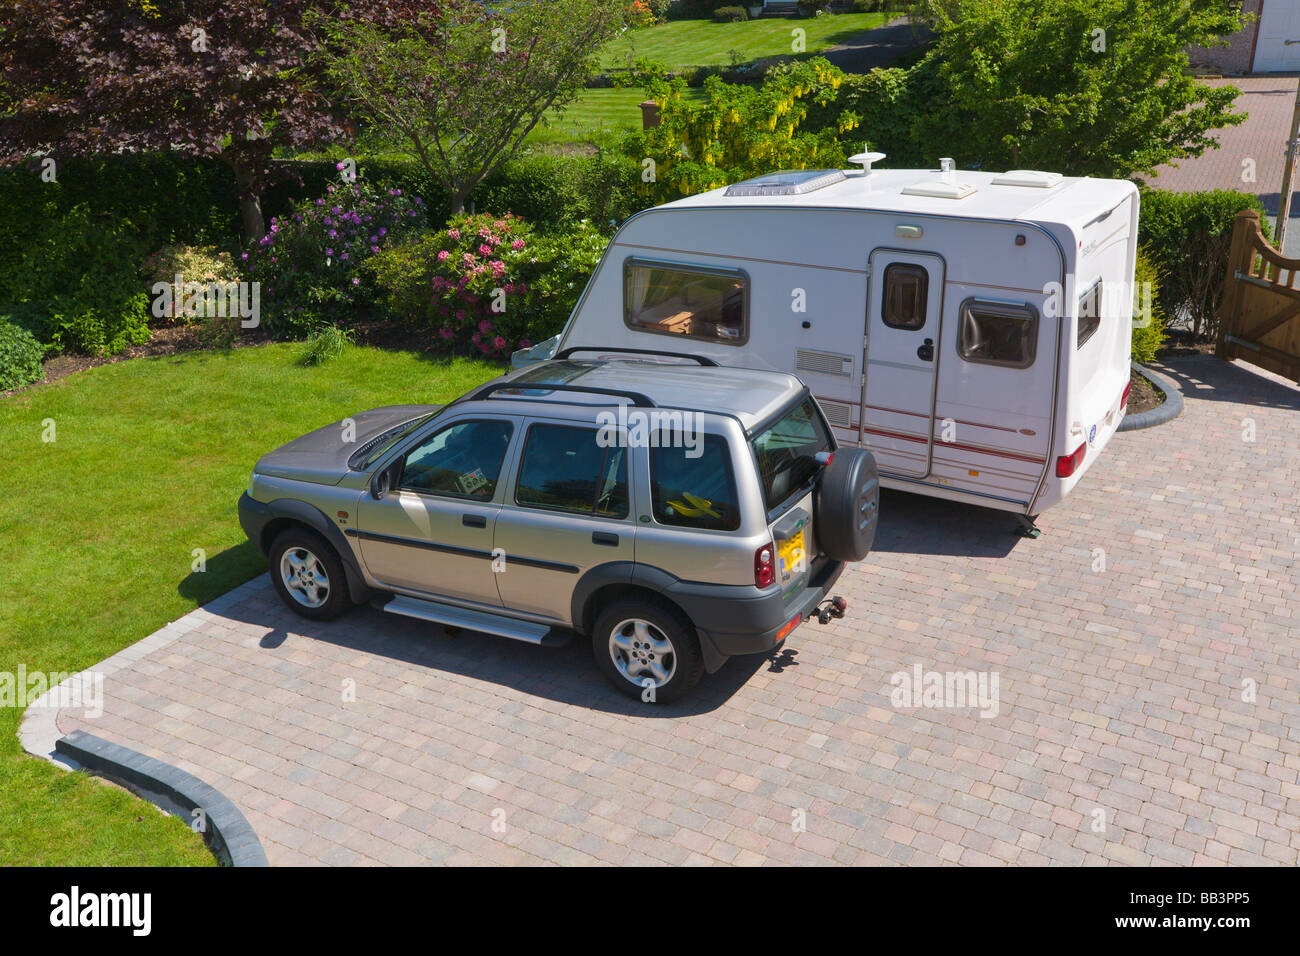 Car and caravan parked on driveway of a house - Stock Image